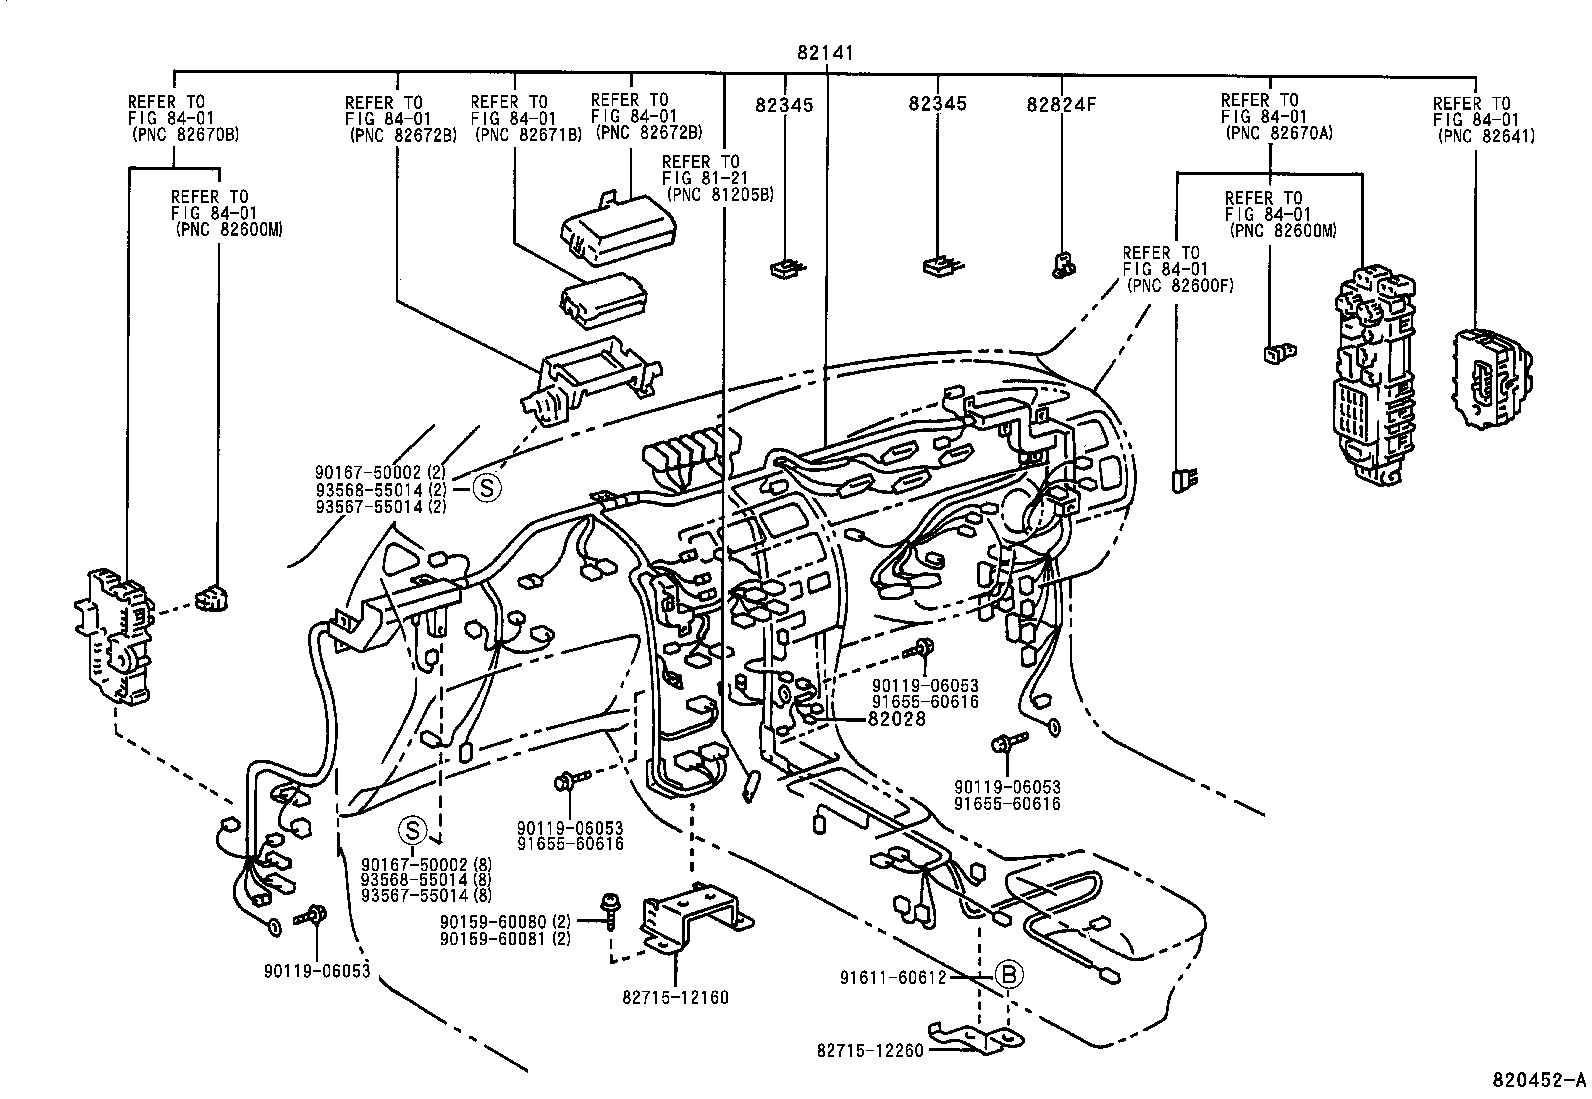 1972 Chevy Truck Engine Code Location, 1972, Free Engine